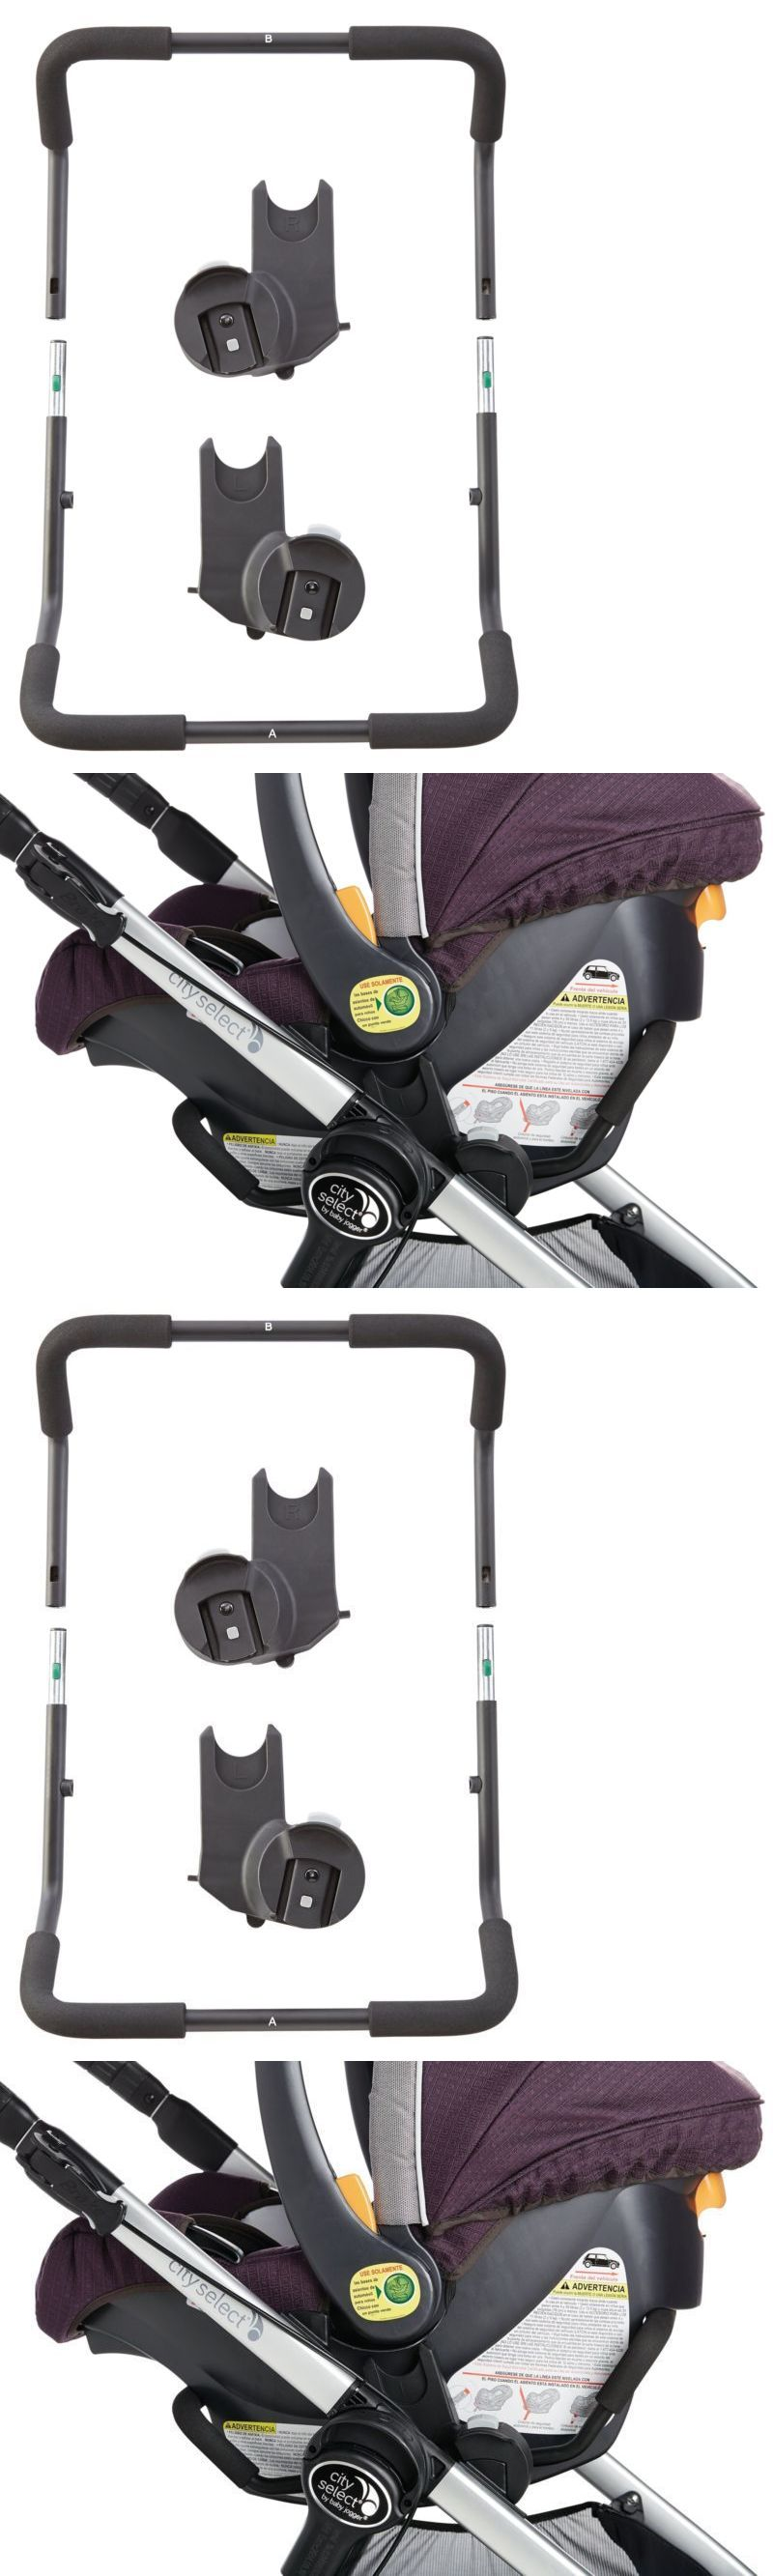 Other Stroller Accessories 180917 Openbox Baby Jogger City Select And Premier Single Car Seat Adapter To Chicco BUY IT NOW ONLY 5499 On EBay